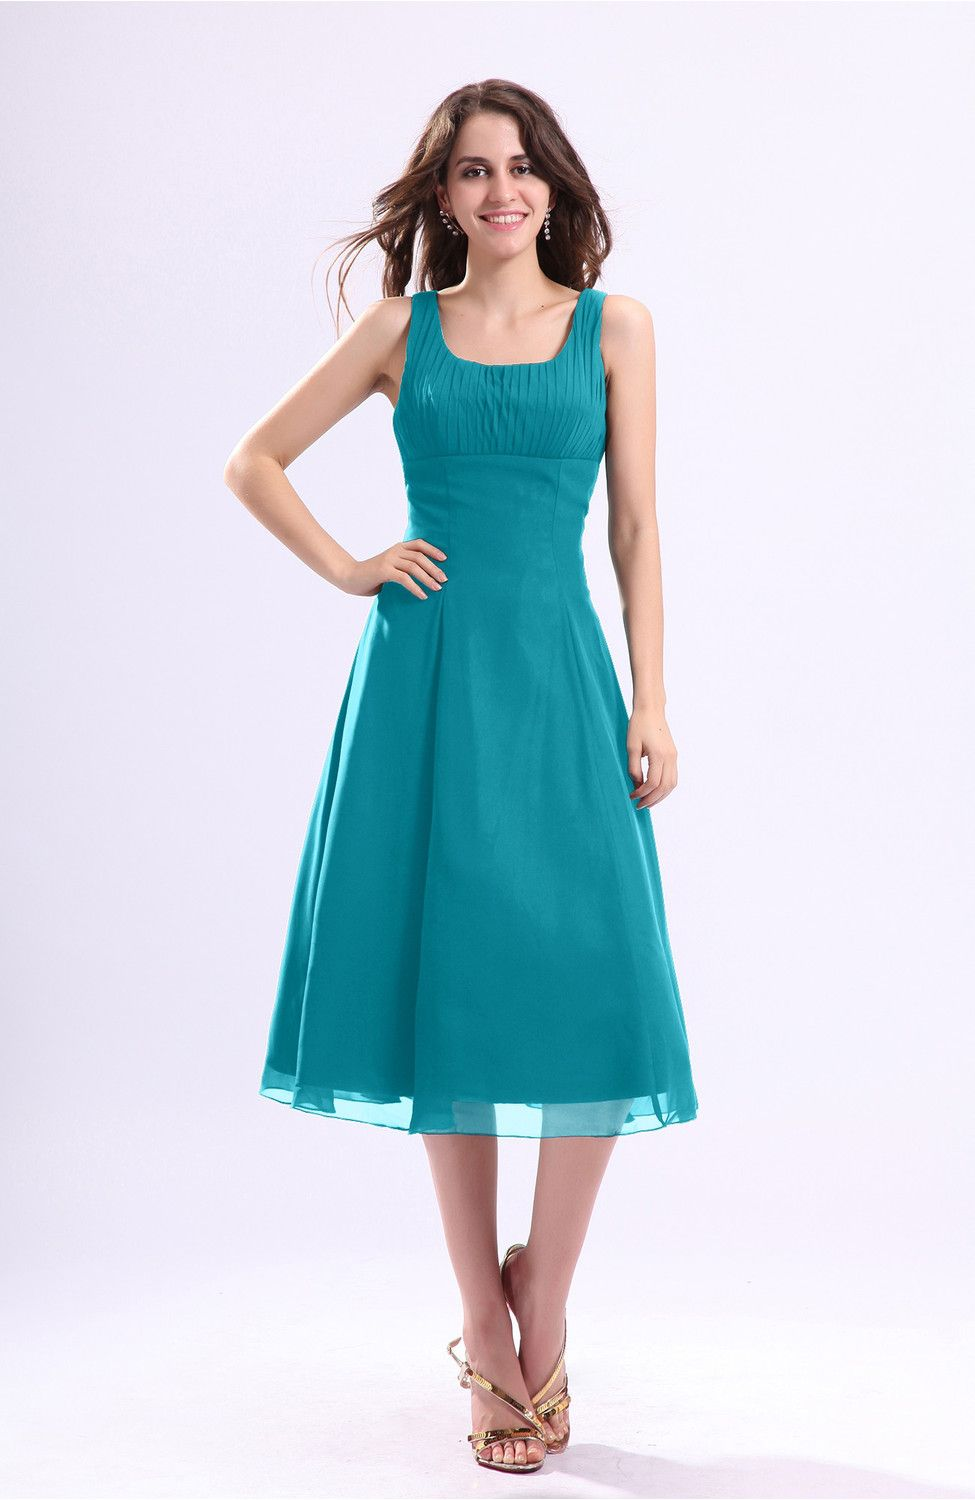 Teal Guest Dress - Simple A-line Square Sleeveless Zip up Wedding ...